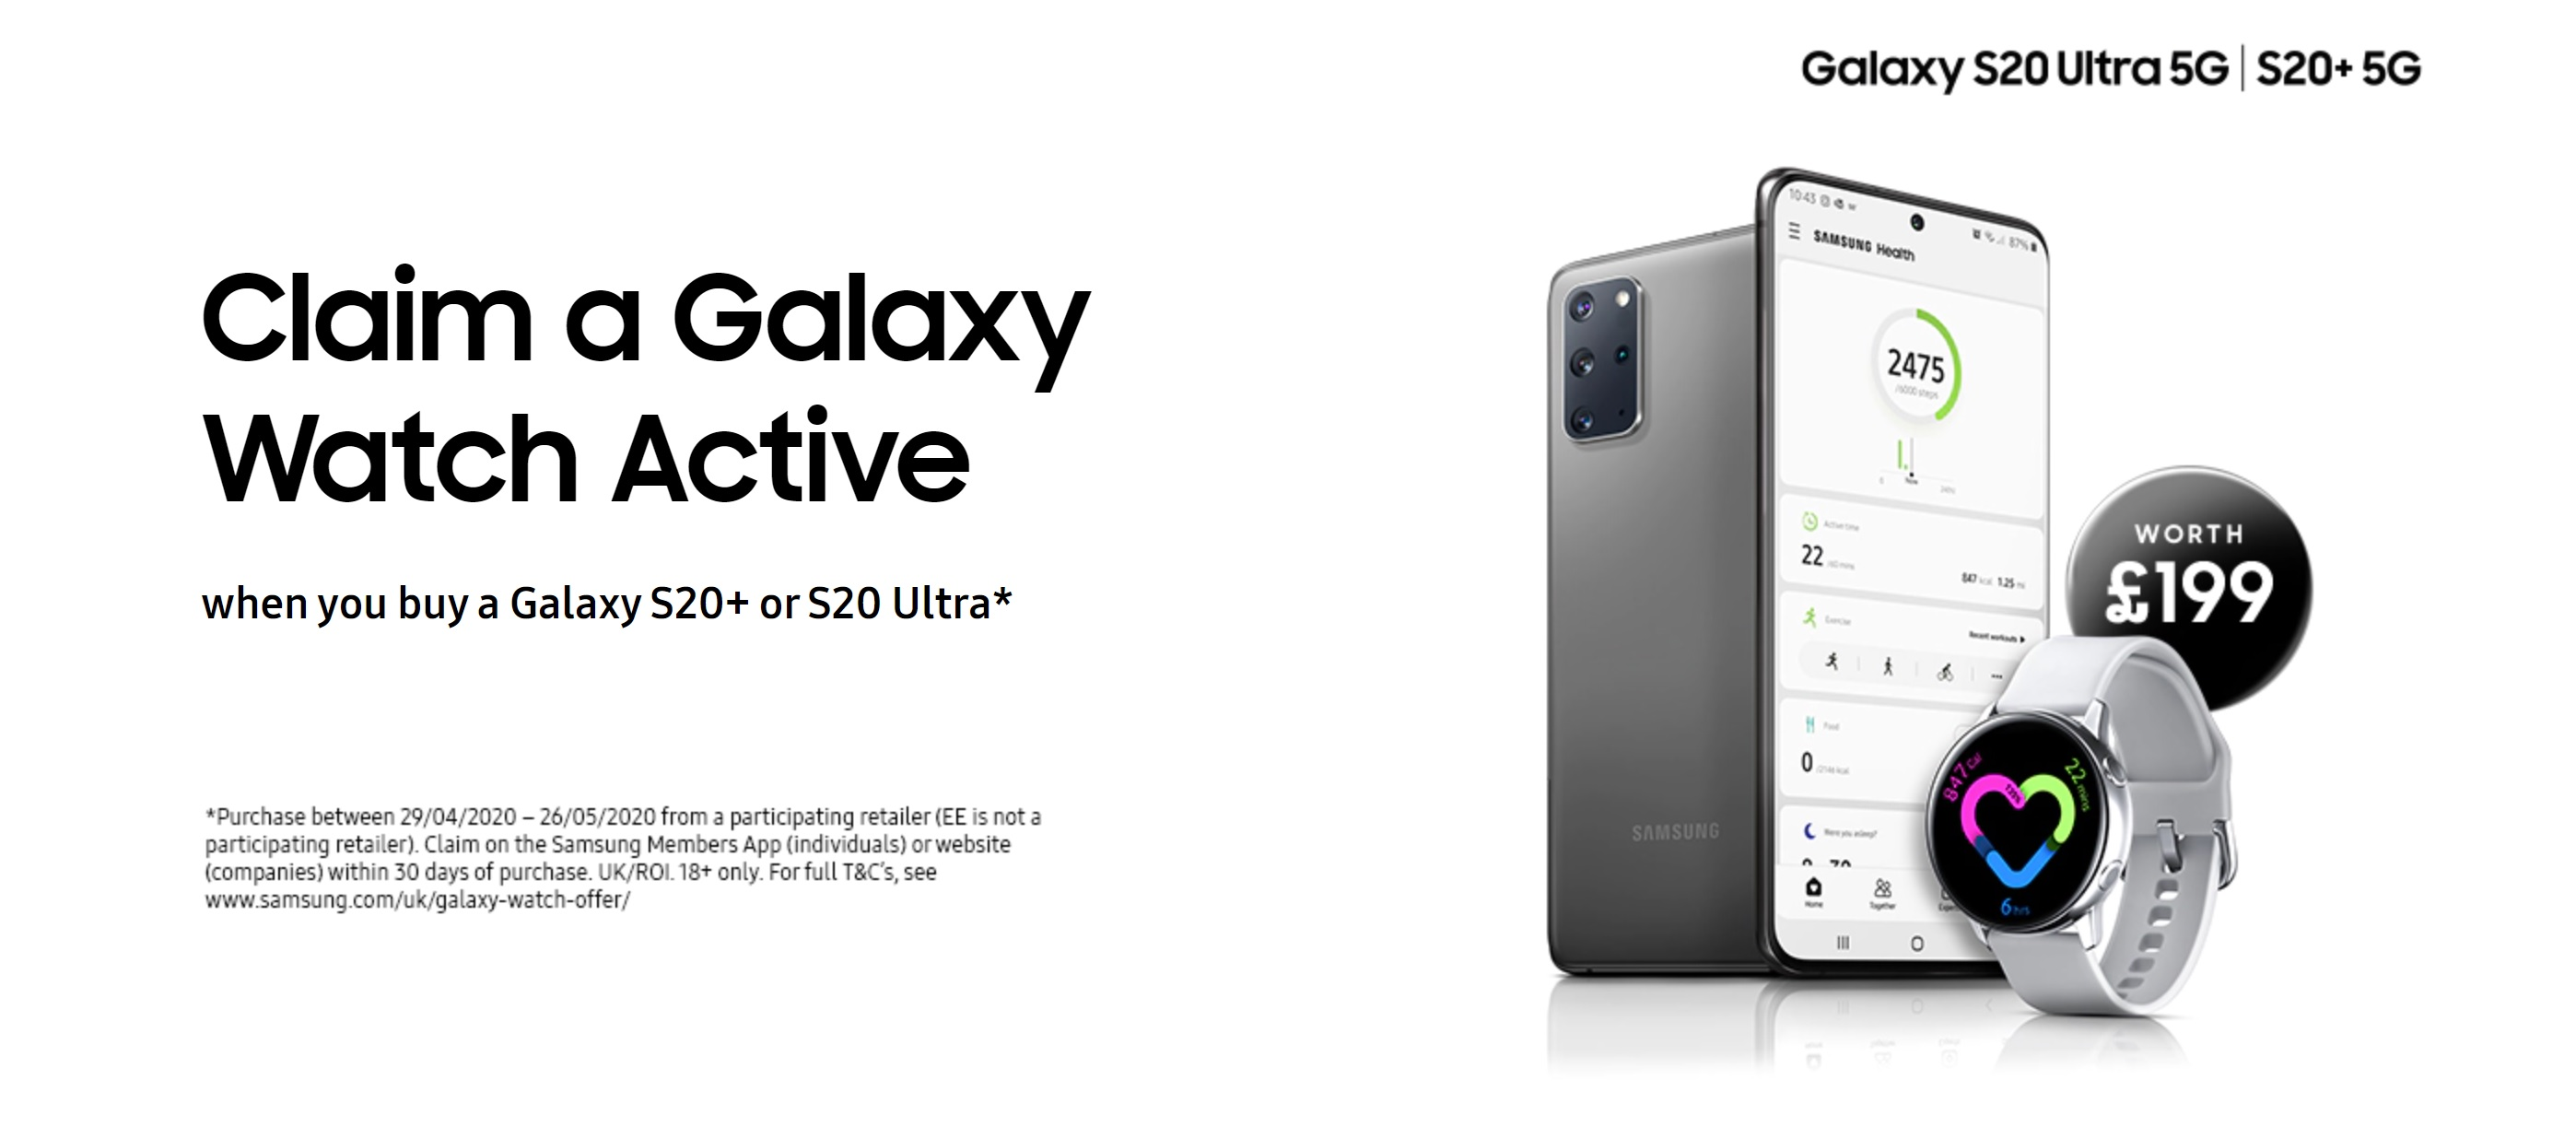 Samsung S20 Plus and Ultra 5G deals with Free Galaxy Watch Active